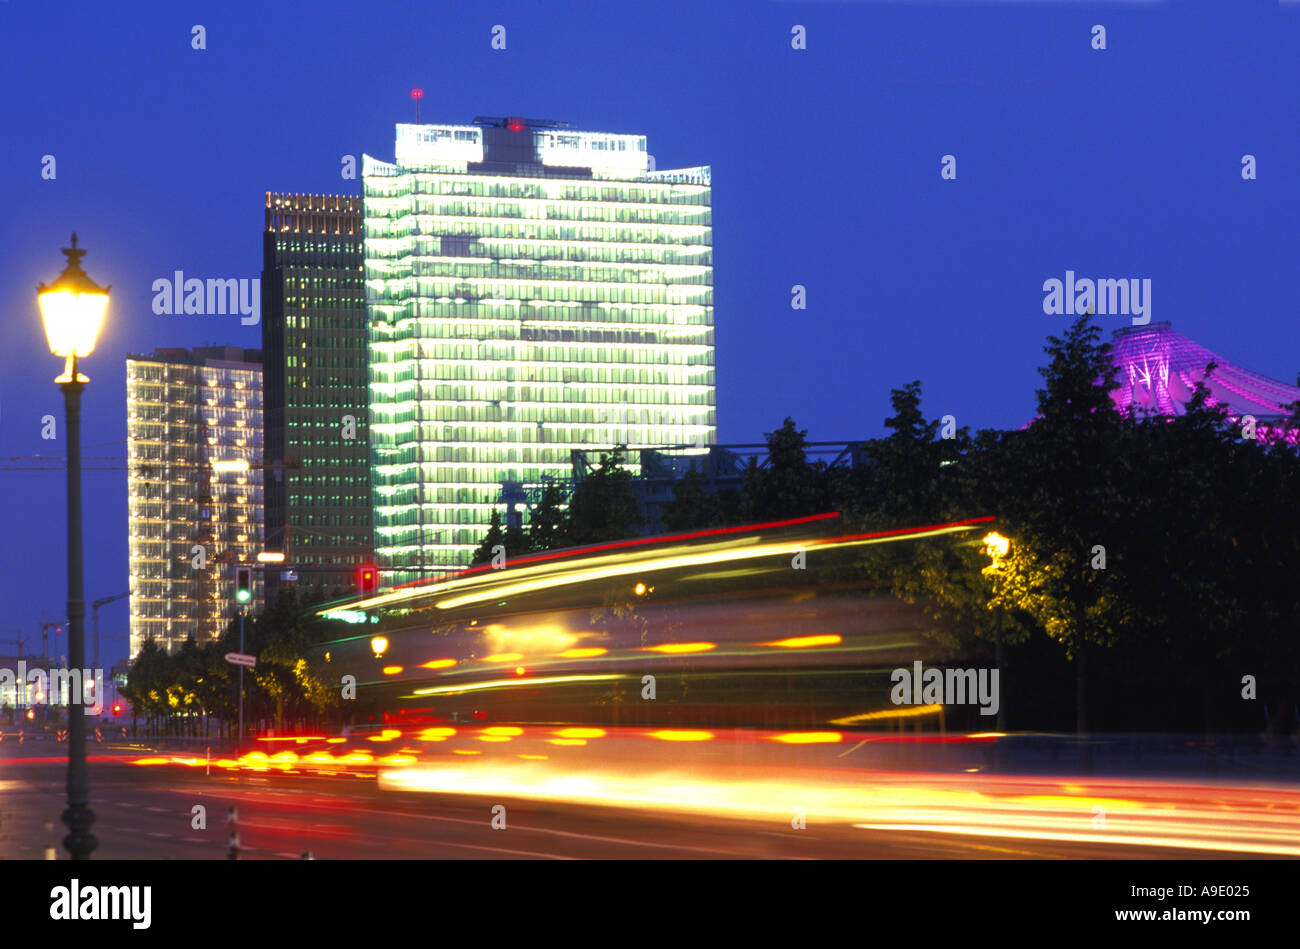 Daimler Benz Quartier at dusk Berlin germany - Stock Image